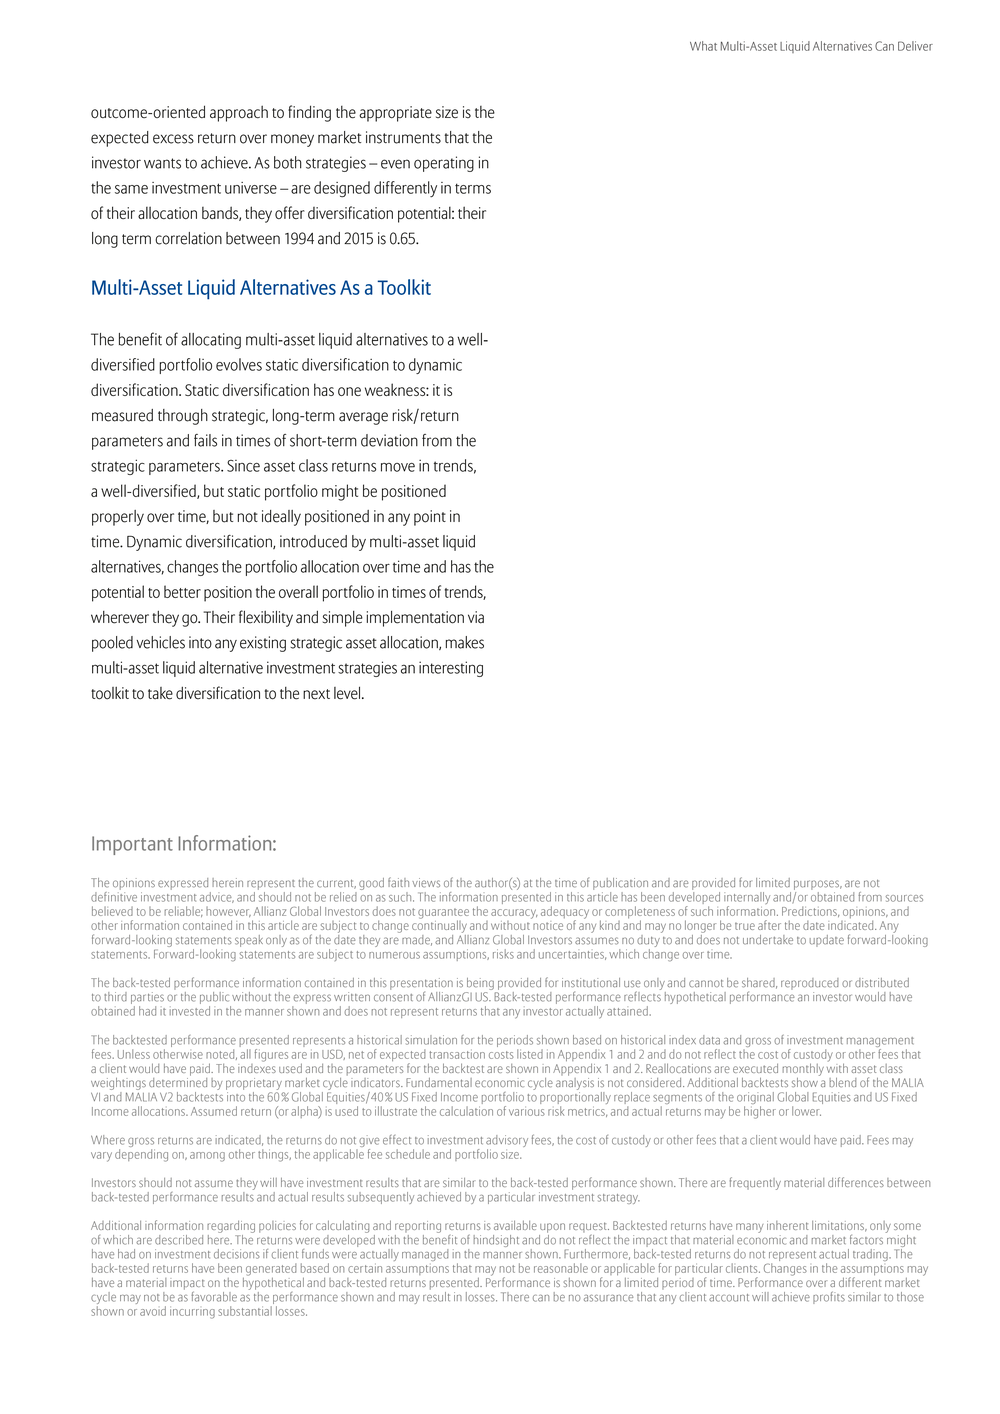 201608_Fokus Multi-Asset Liquid Alternatives_EN_Page_7.png